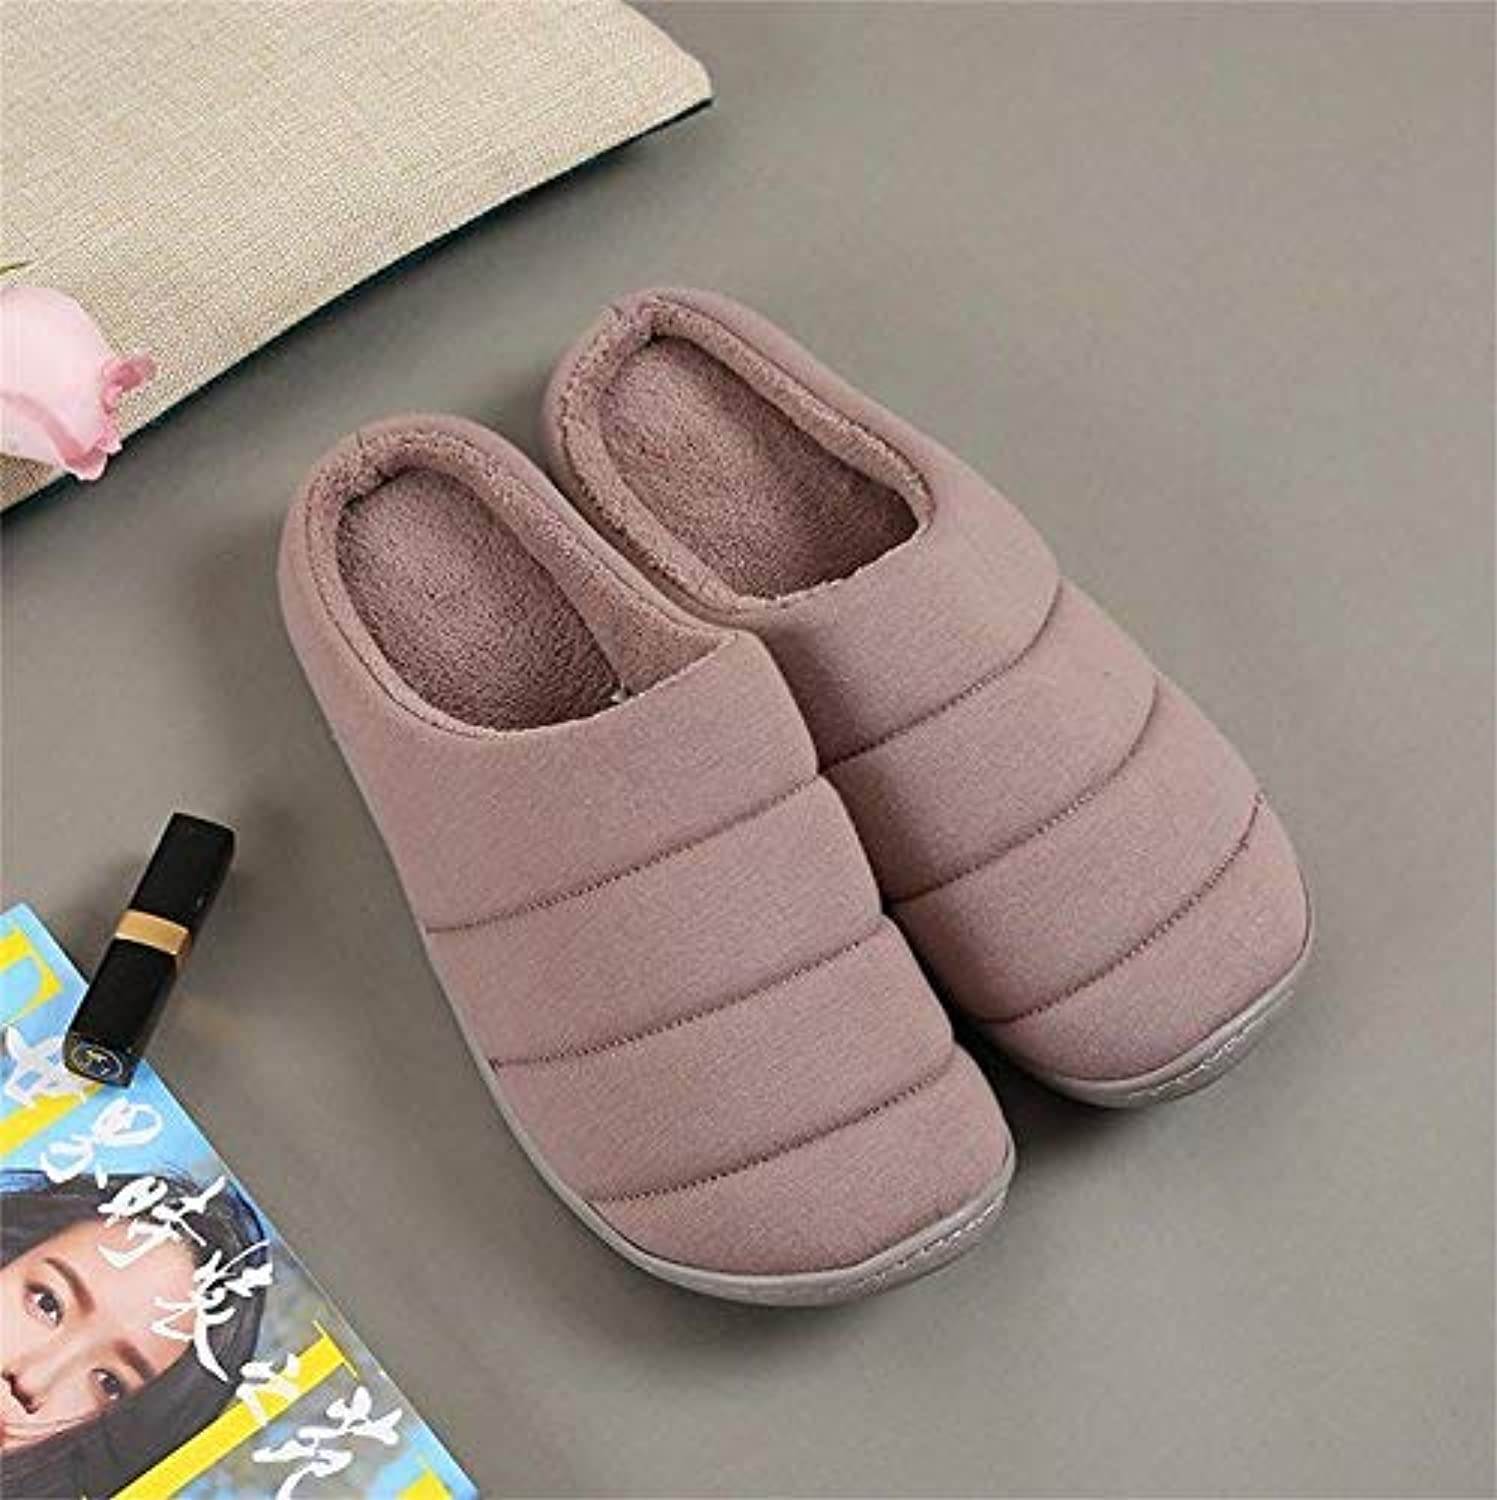 JaHGDU Men's Fall and Winter Home shoes Thick Cotton Slippers Slip Keep Warm Indoor Bedroom Slippers for Men Pink